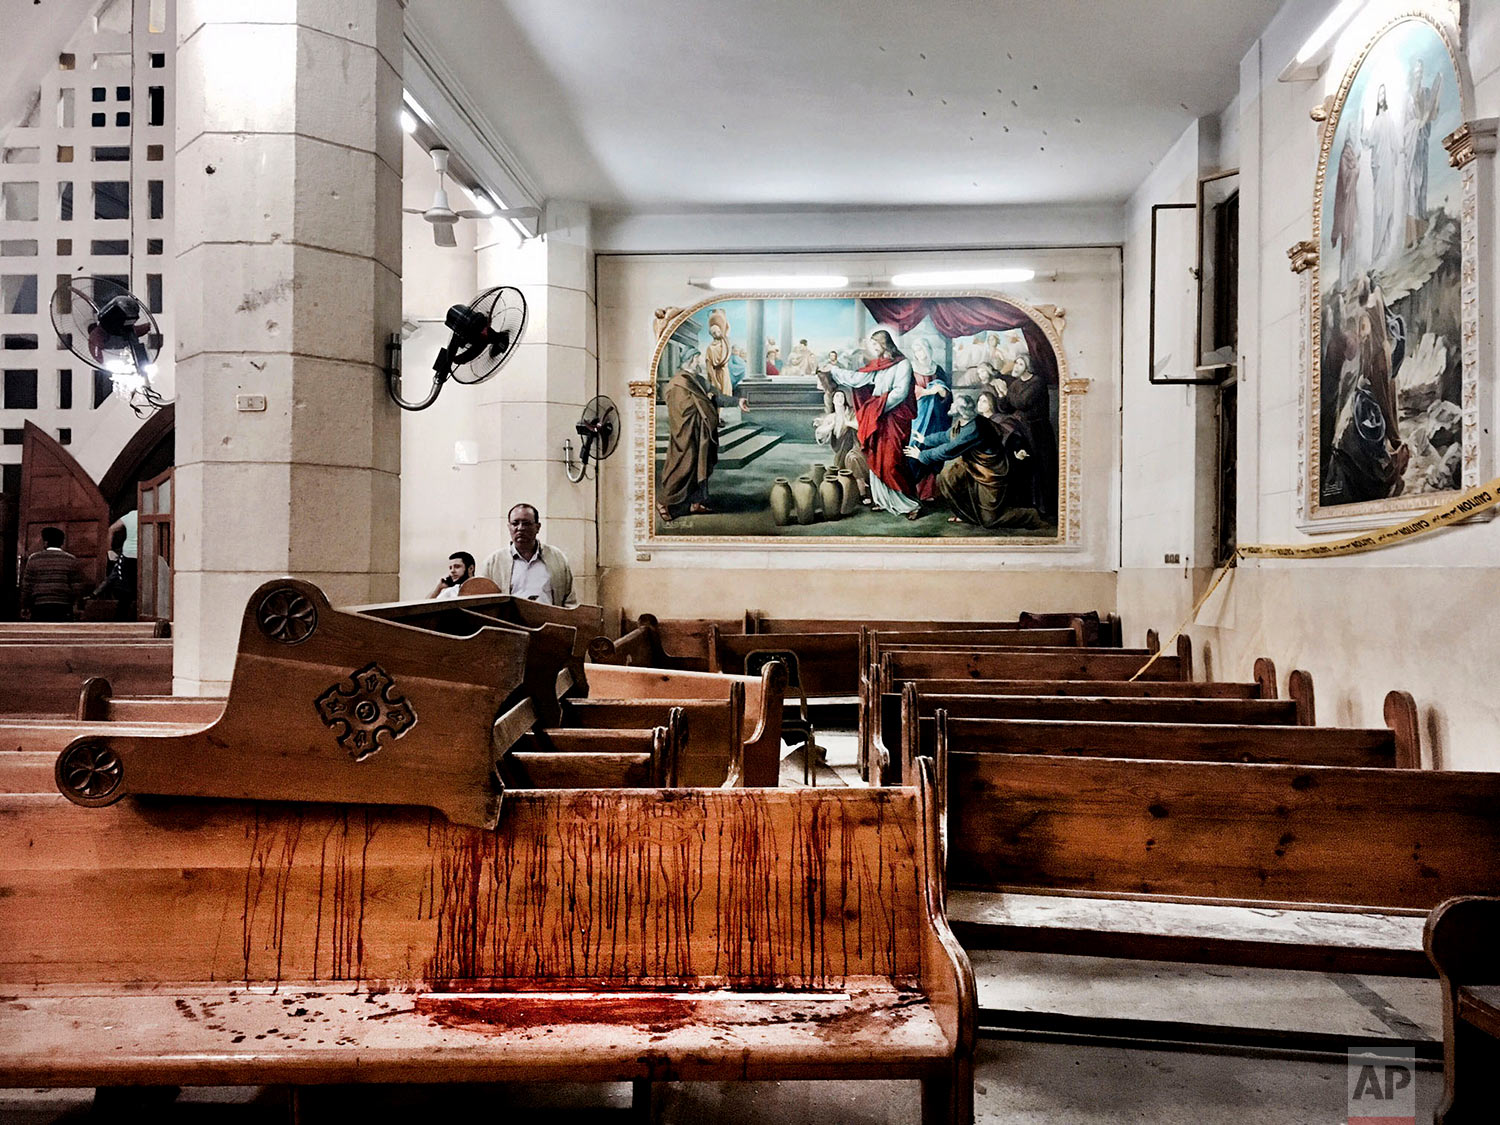 Blood stains pews inside the St. George Church after a suicide bombing, in the Nile Delta town of Tanta, Egypt, Sunday, April 9, 2017. Bombs exploded at two Coptic churches in the northern Egyptian cities of Tanta and Alexandria as worshippers were celebrating Palm Sunday, killing over 40 people and wounding scores more in assaults claimed by the Islamic State group. (AP Photo/Nariman El-Mofty)